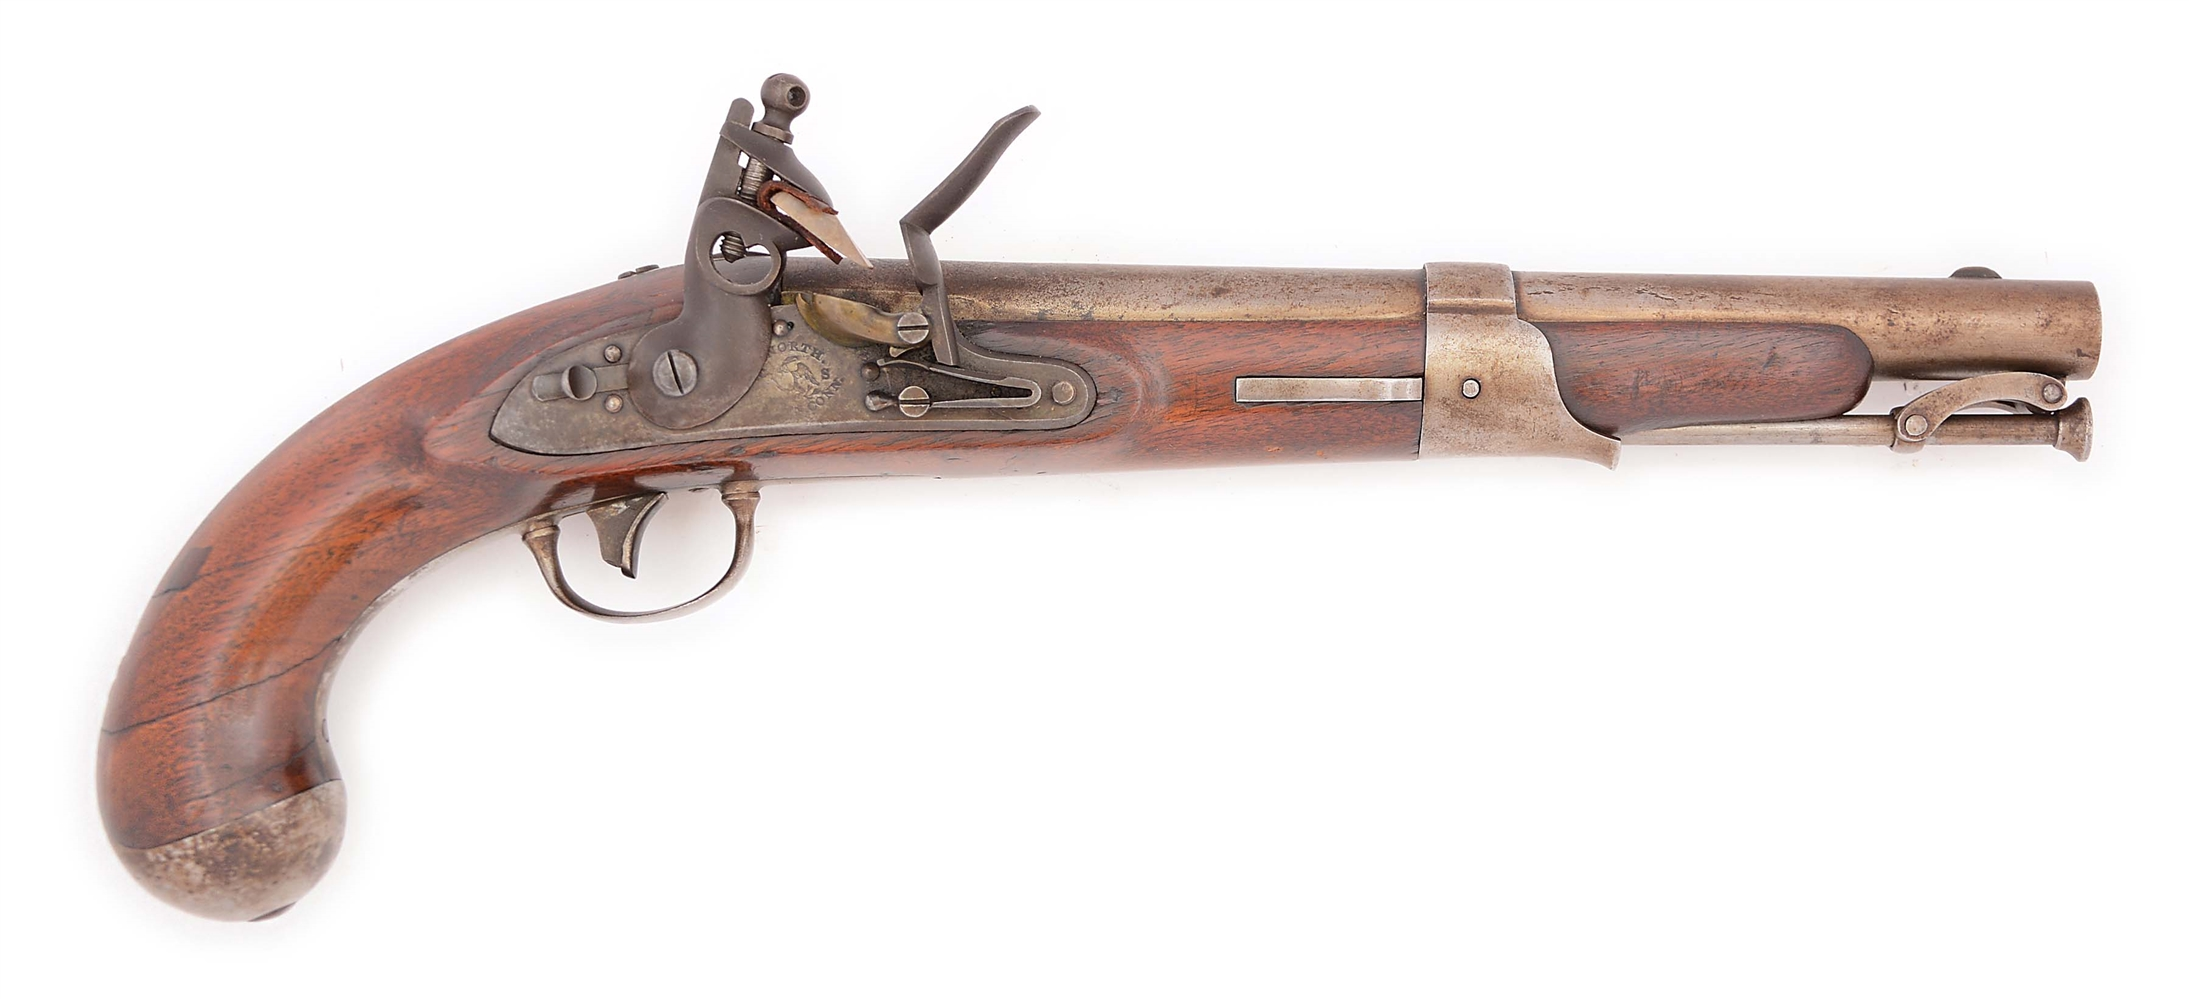 (A) A CONSIDERABLY BETTER THAN AVERAGE US 1819 FLINTLOCK MARTIAL PISTOL BY SIMEON NORTH, UNDATED.